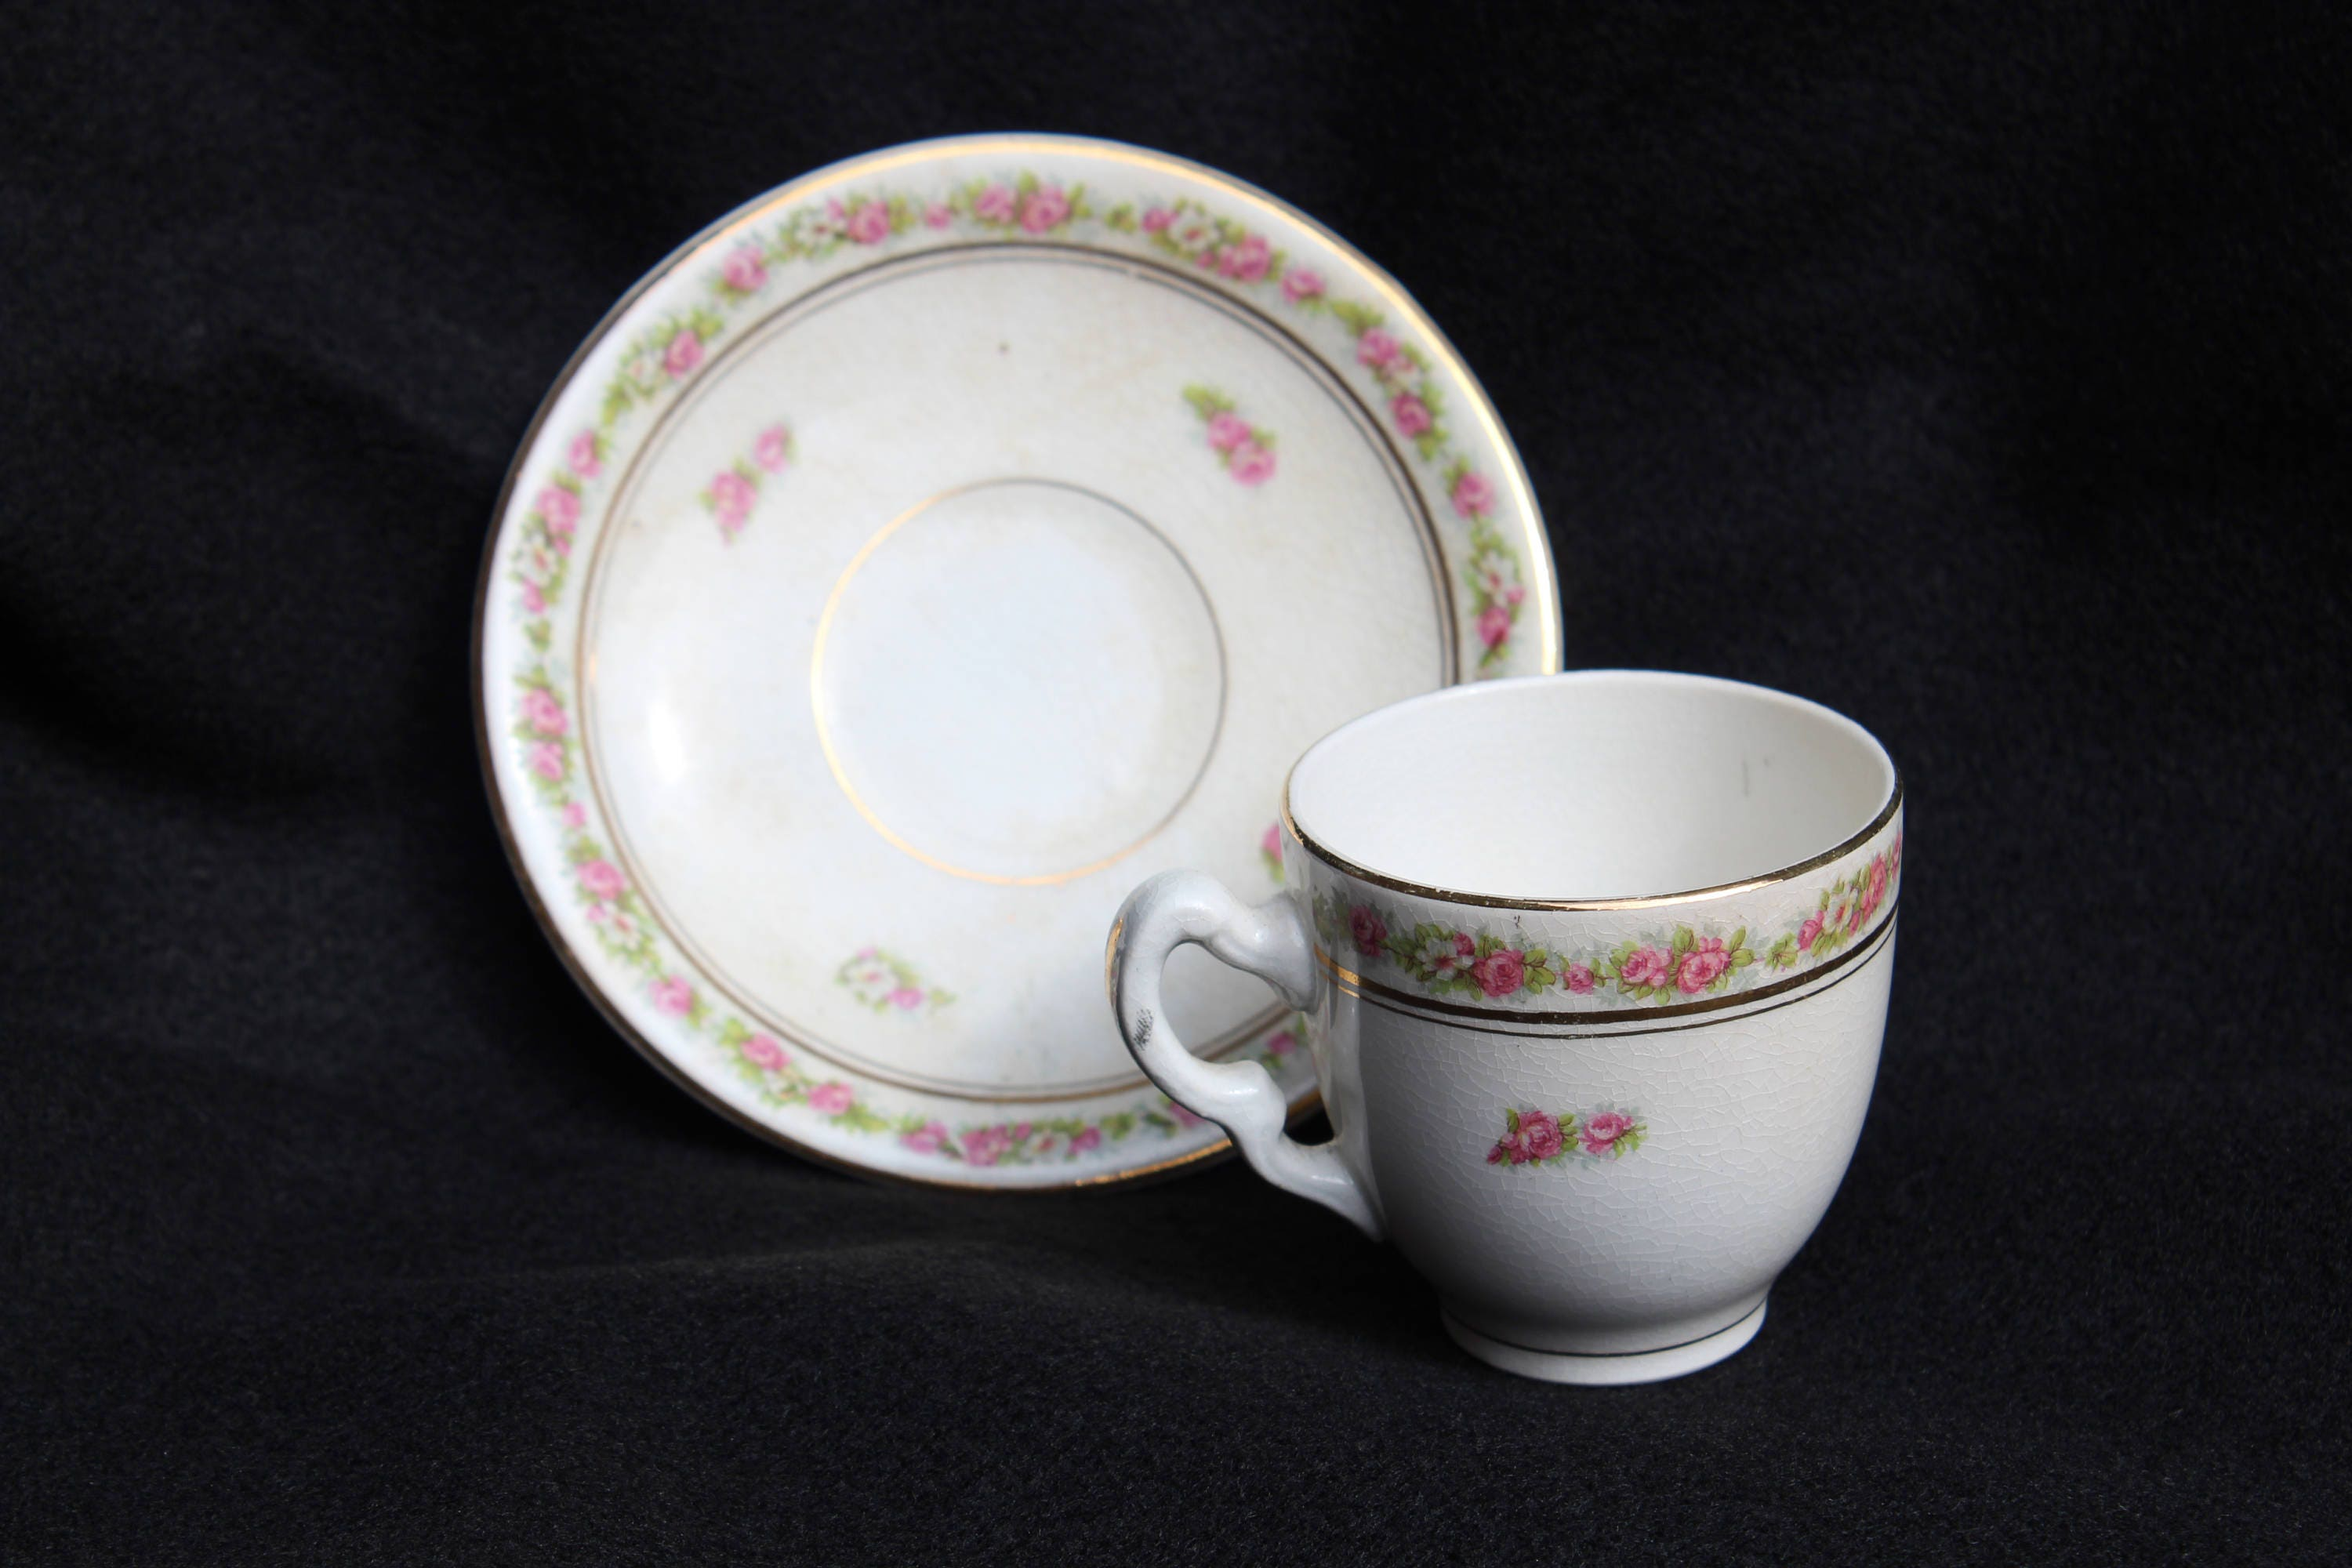 gallery photo gallery photo ... & Demitasse Tea Cup and Matching Saucer by Mercer Semi Vitreous Circa ...